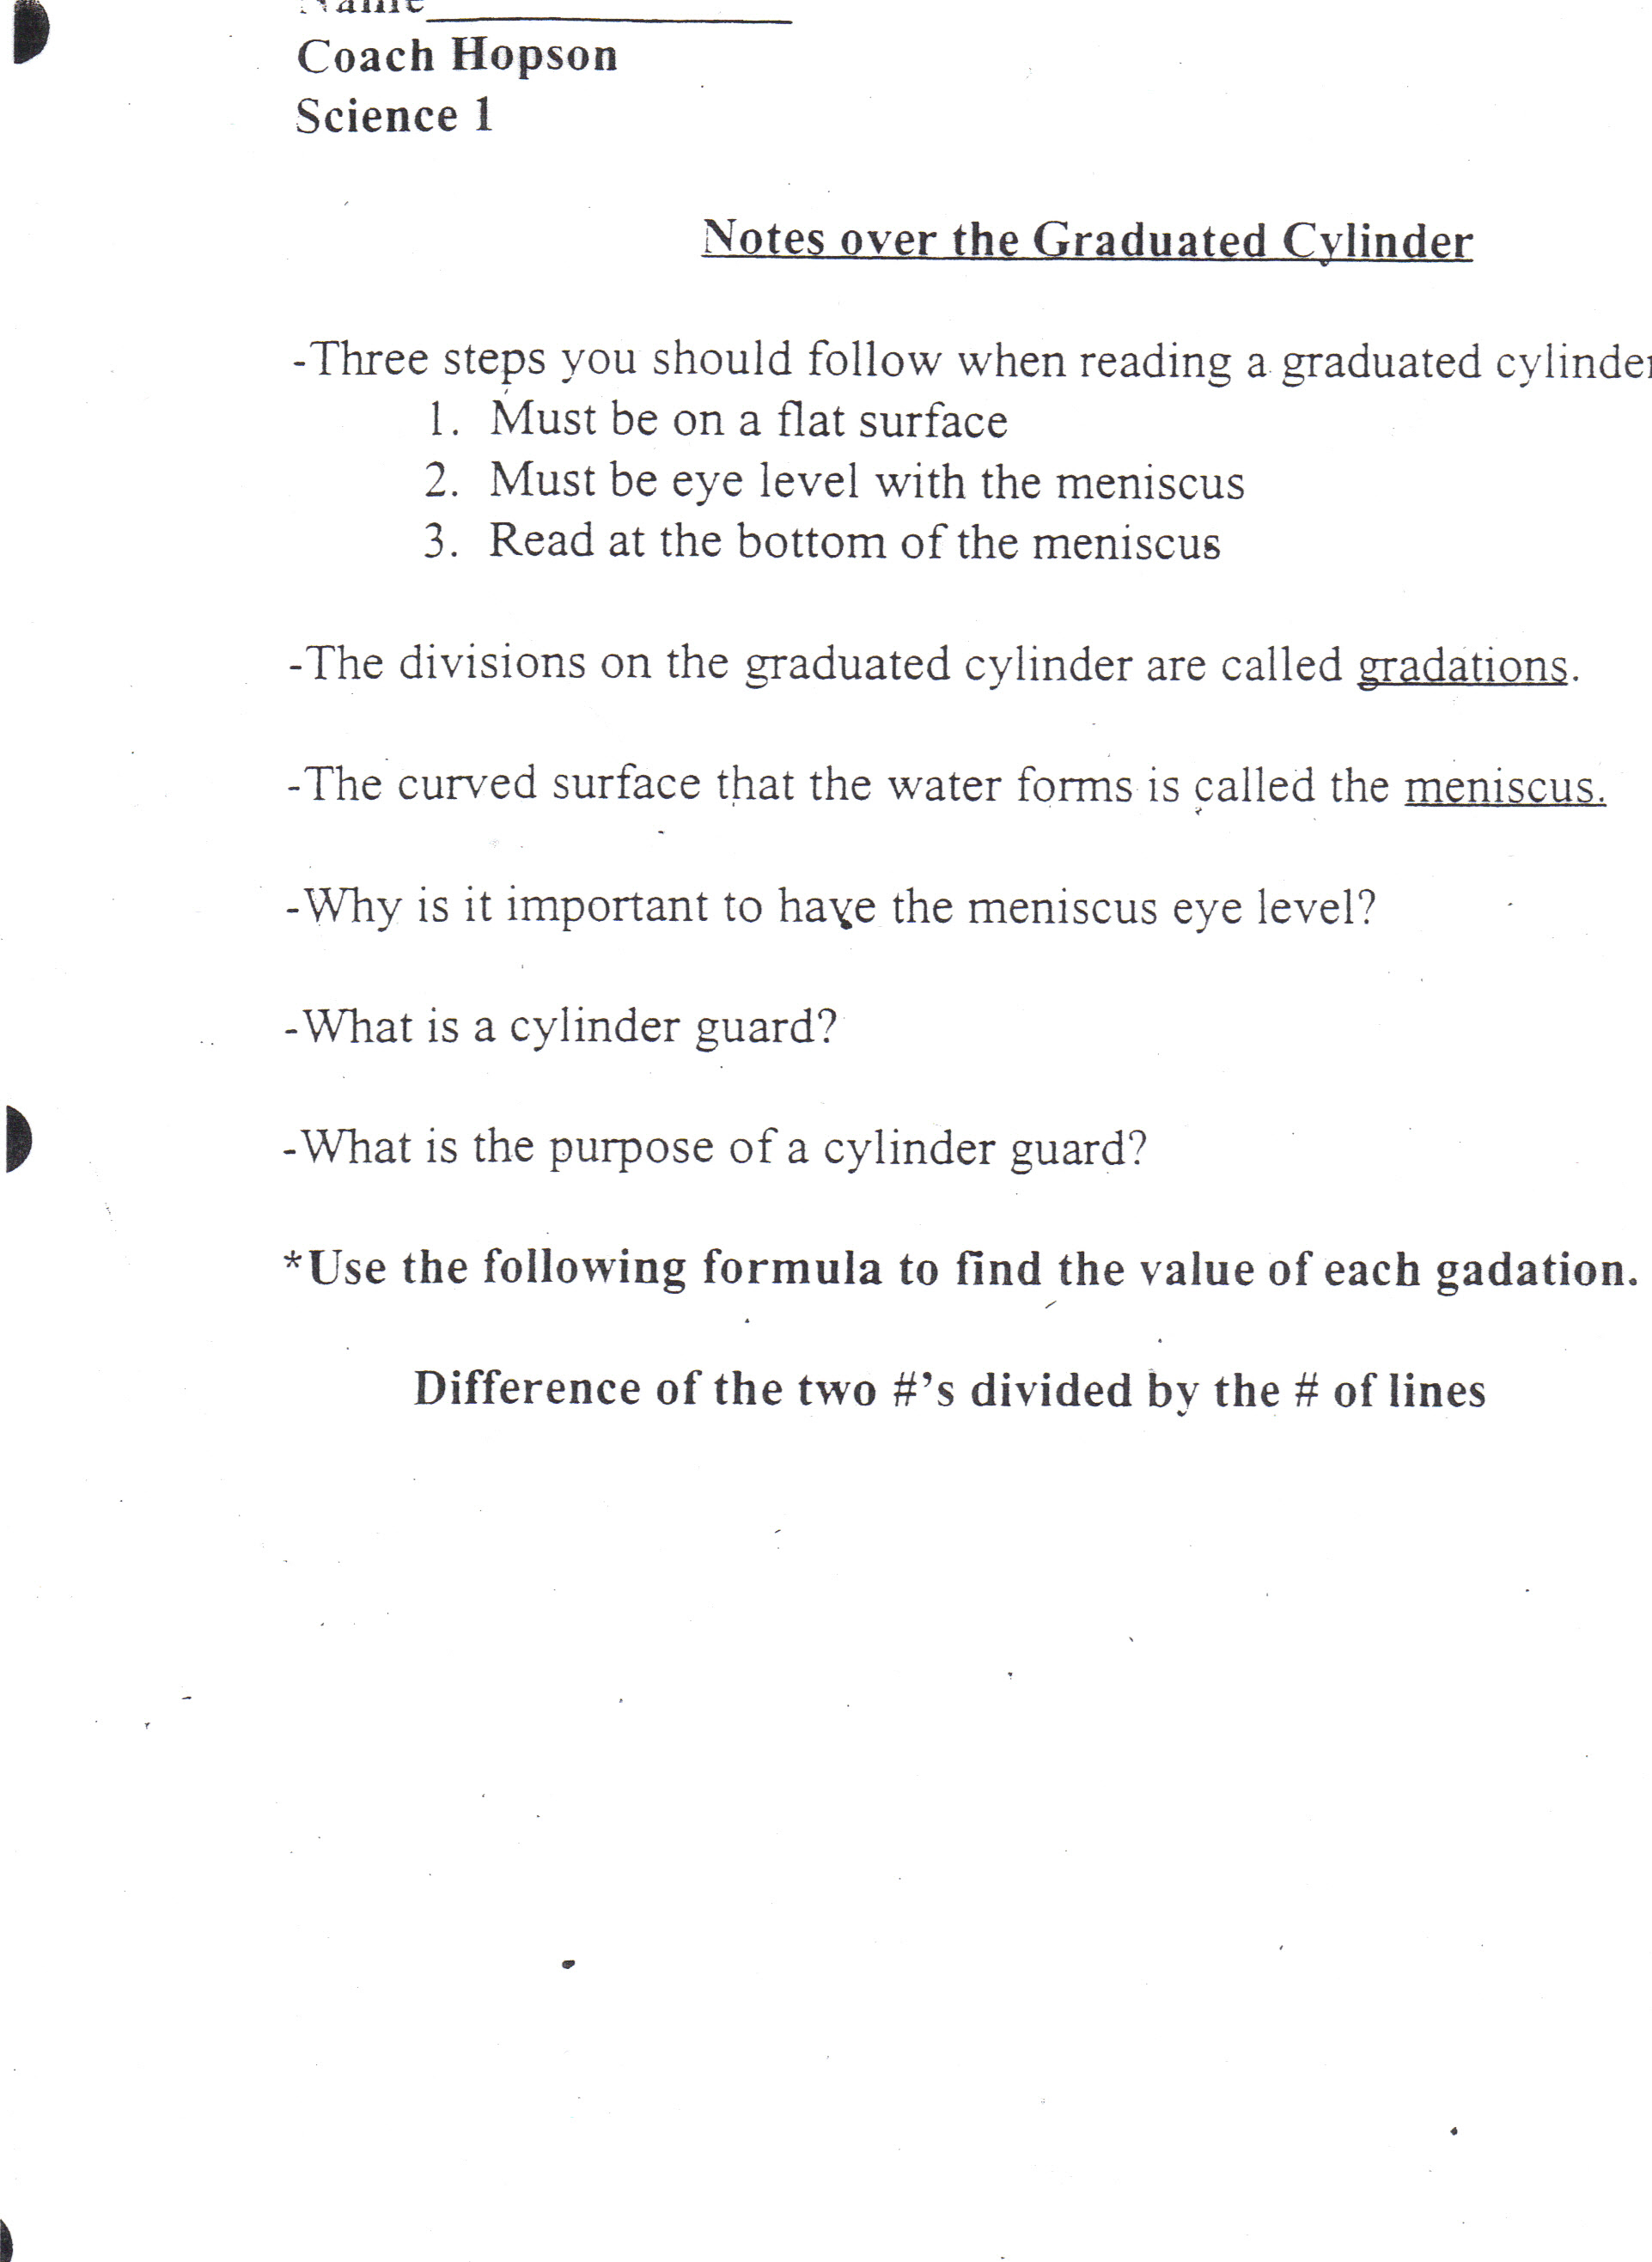 worksheet Symbiosis Worksheet High School hopson fred science reviews and notes graduated cylinder notes